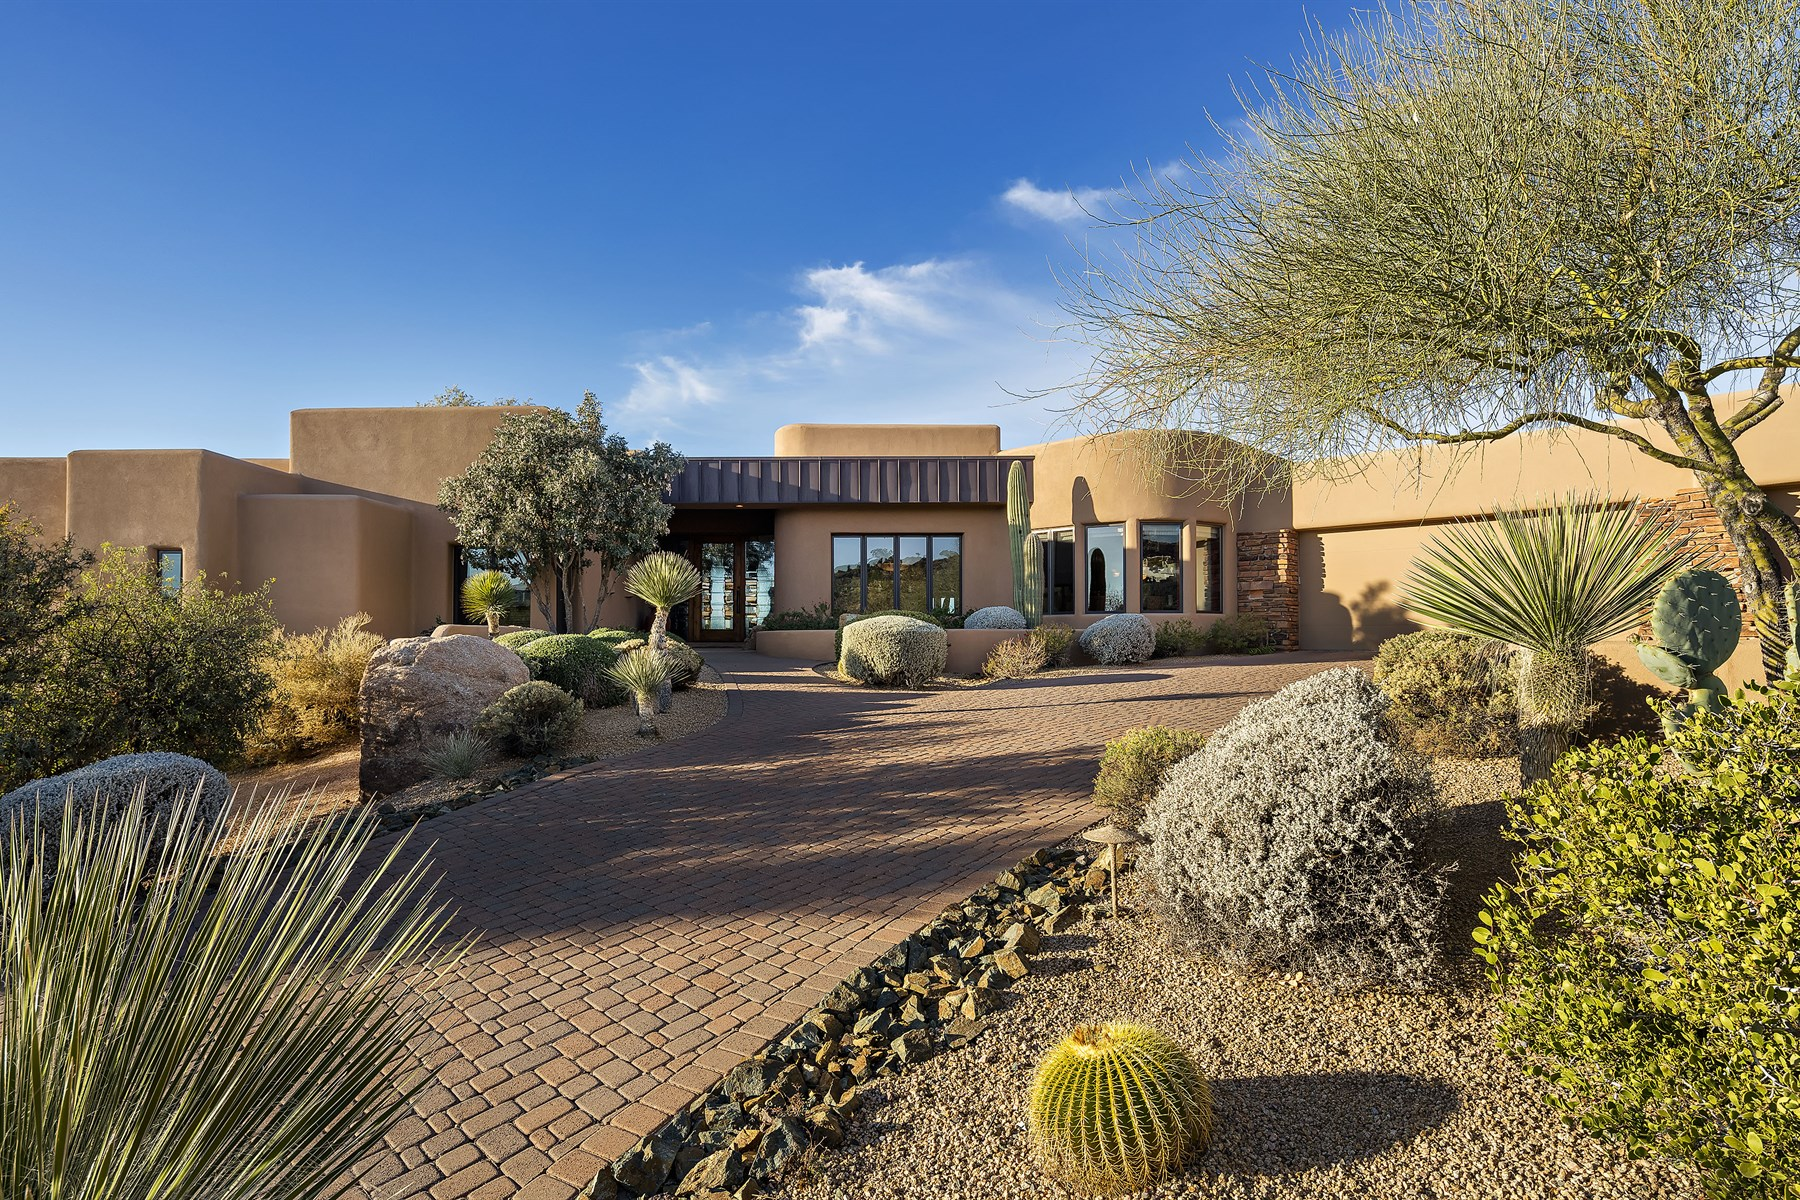 一戸建て のために 売買 アット Premiere Apache Peak location in the heart of the private Desert Mountain Club 41640 N 112th Pl Scottsdale, アリゾナ, 85262 アメリカ合衆国